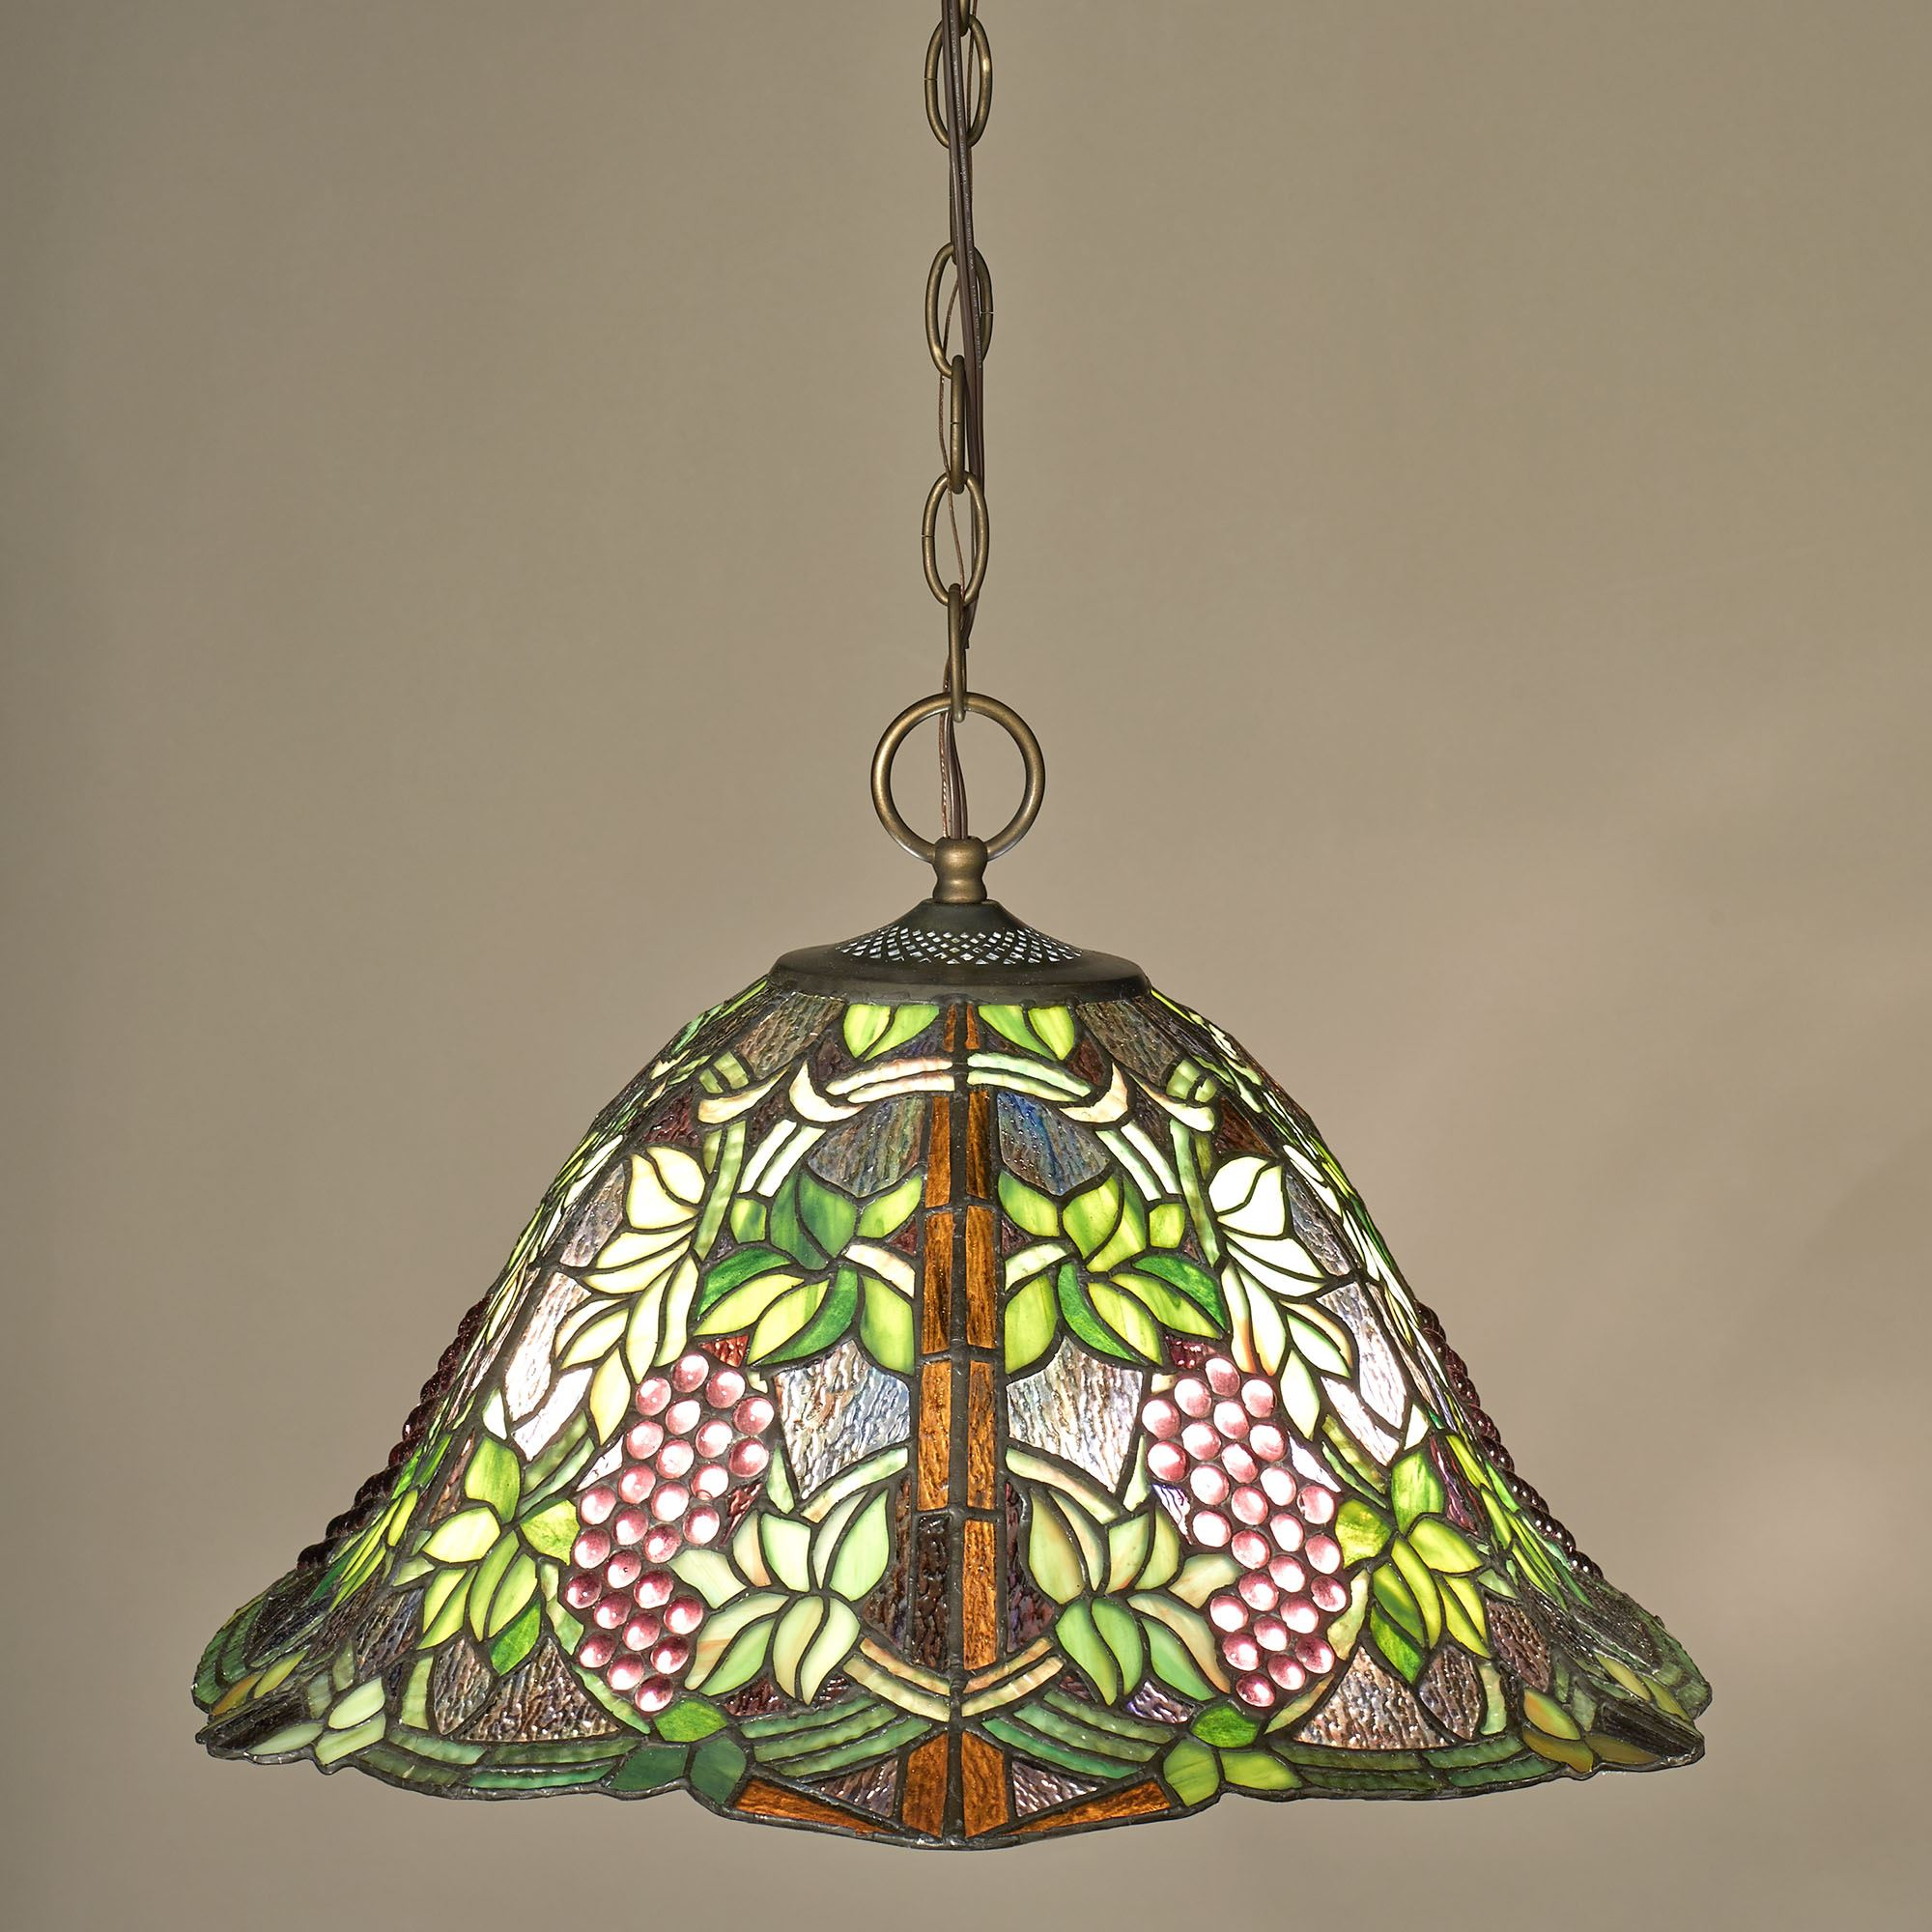 Vintage Grapevine Stained Glass Hanging Ceiling Lamp